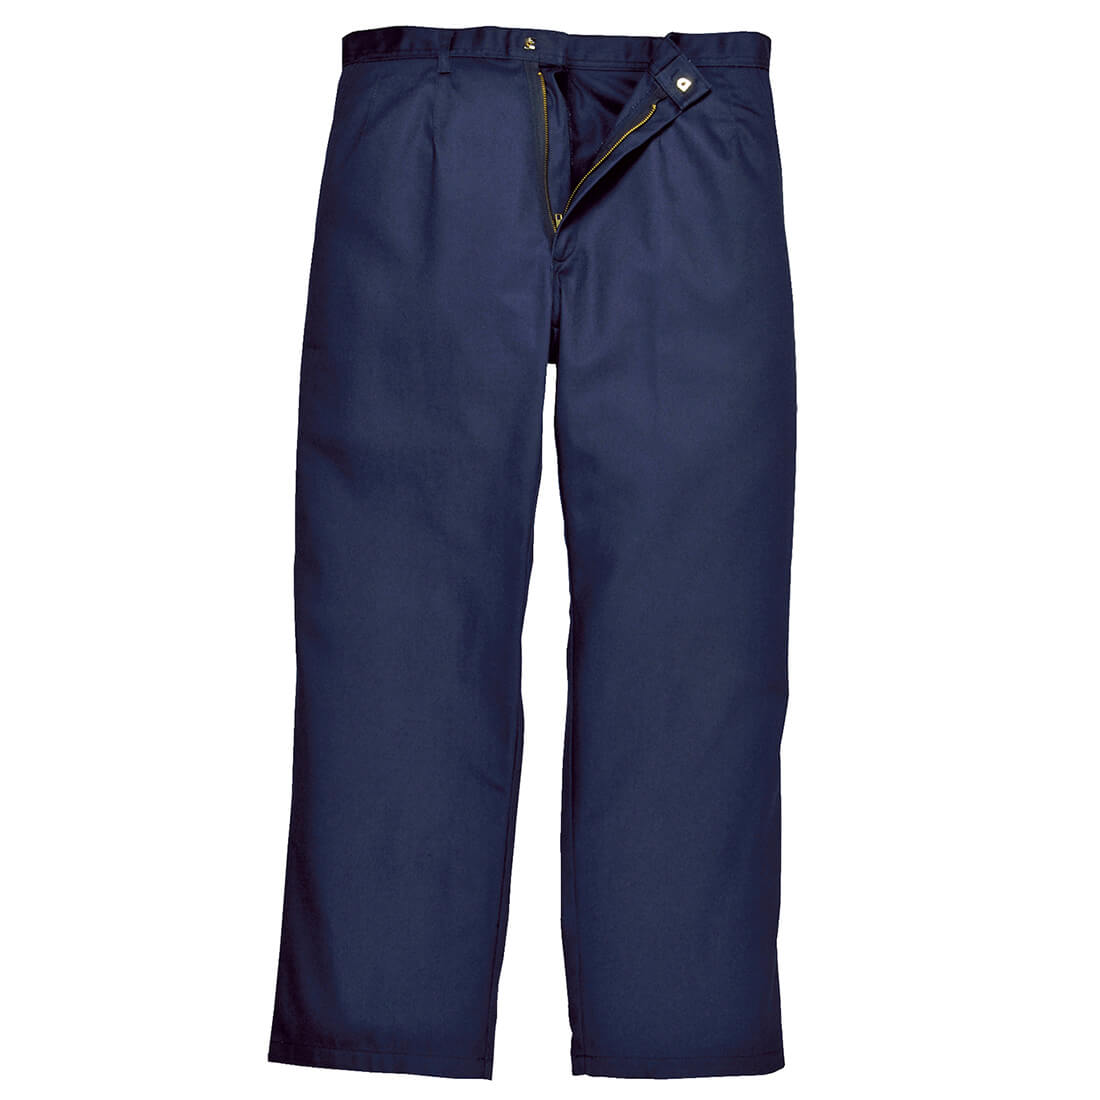 """Image of Biz Weld Mens Flame Resistant Trousers Navy Blue 2XL 34"""""""